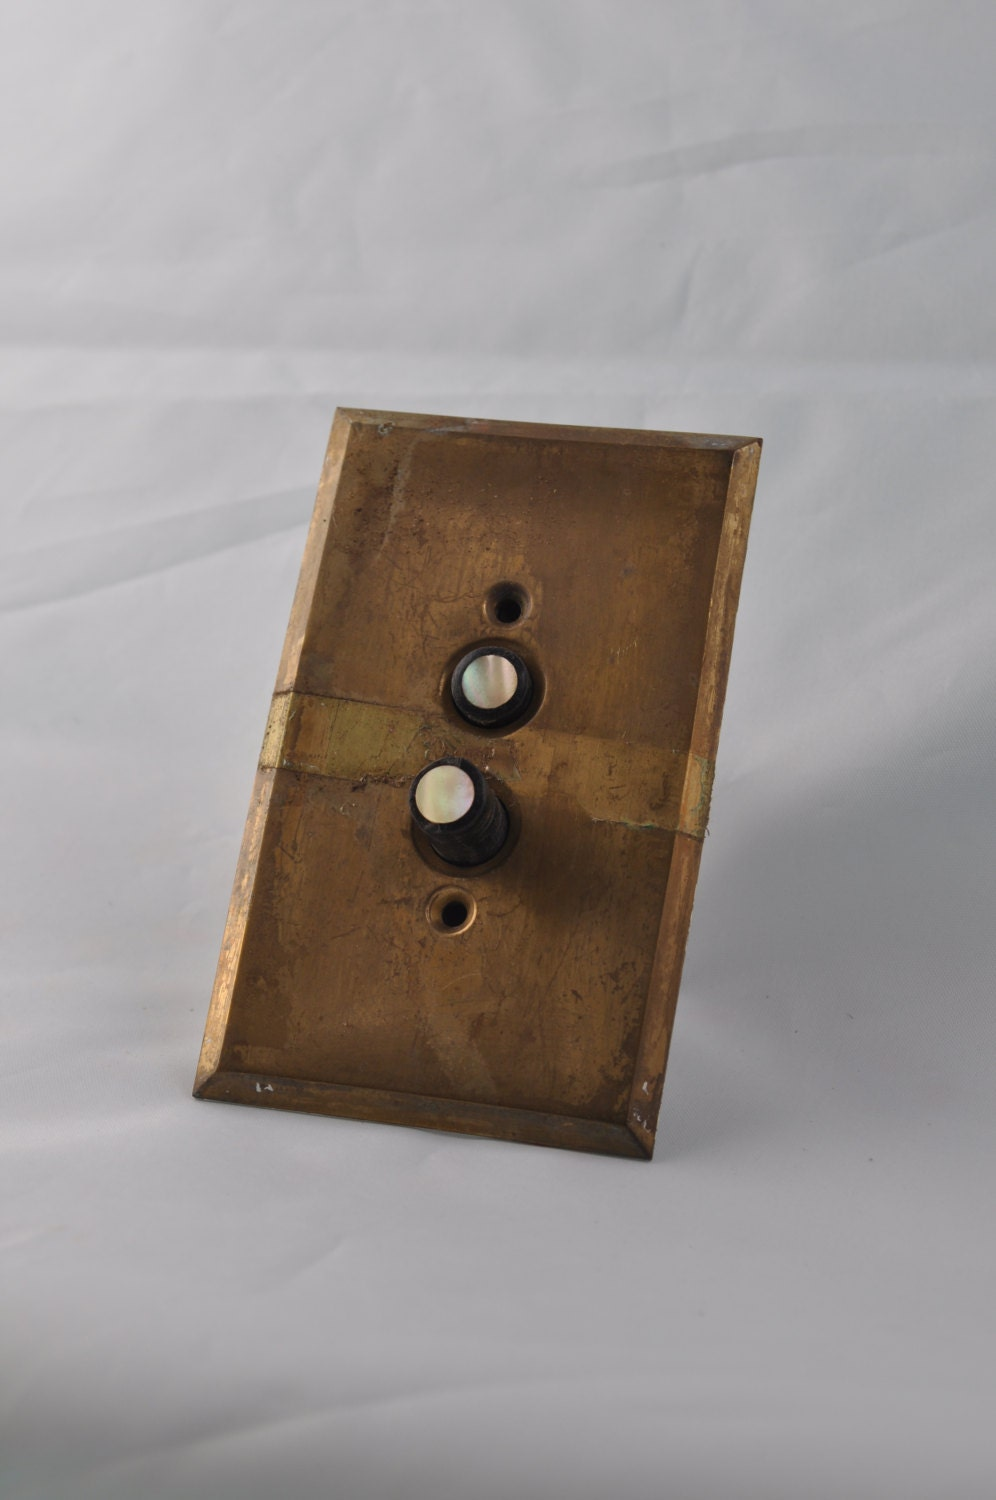 Vintage Push Button Light Switch And Switch Plate Salvage